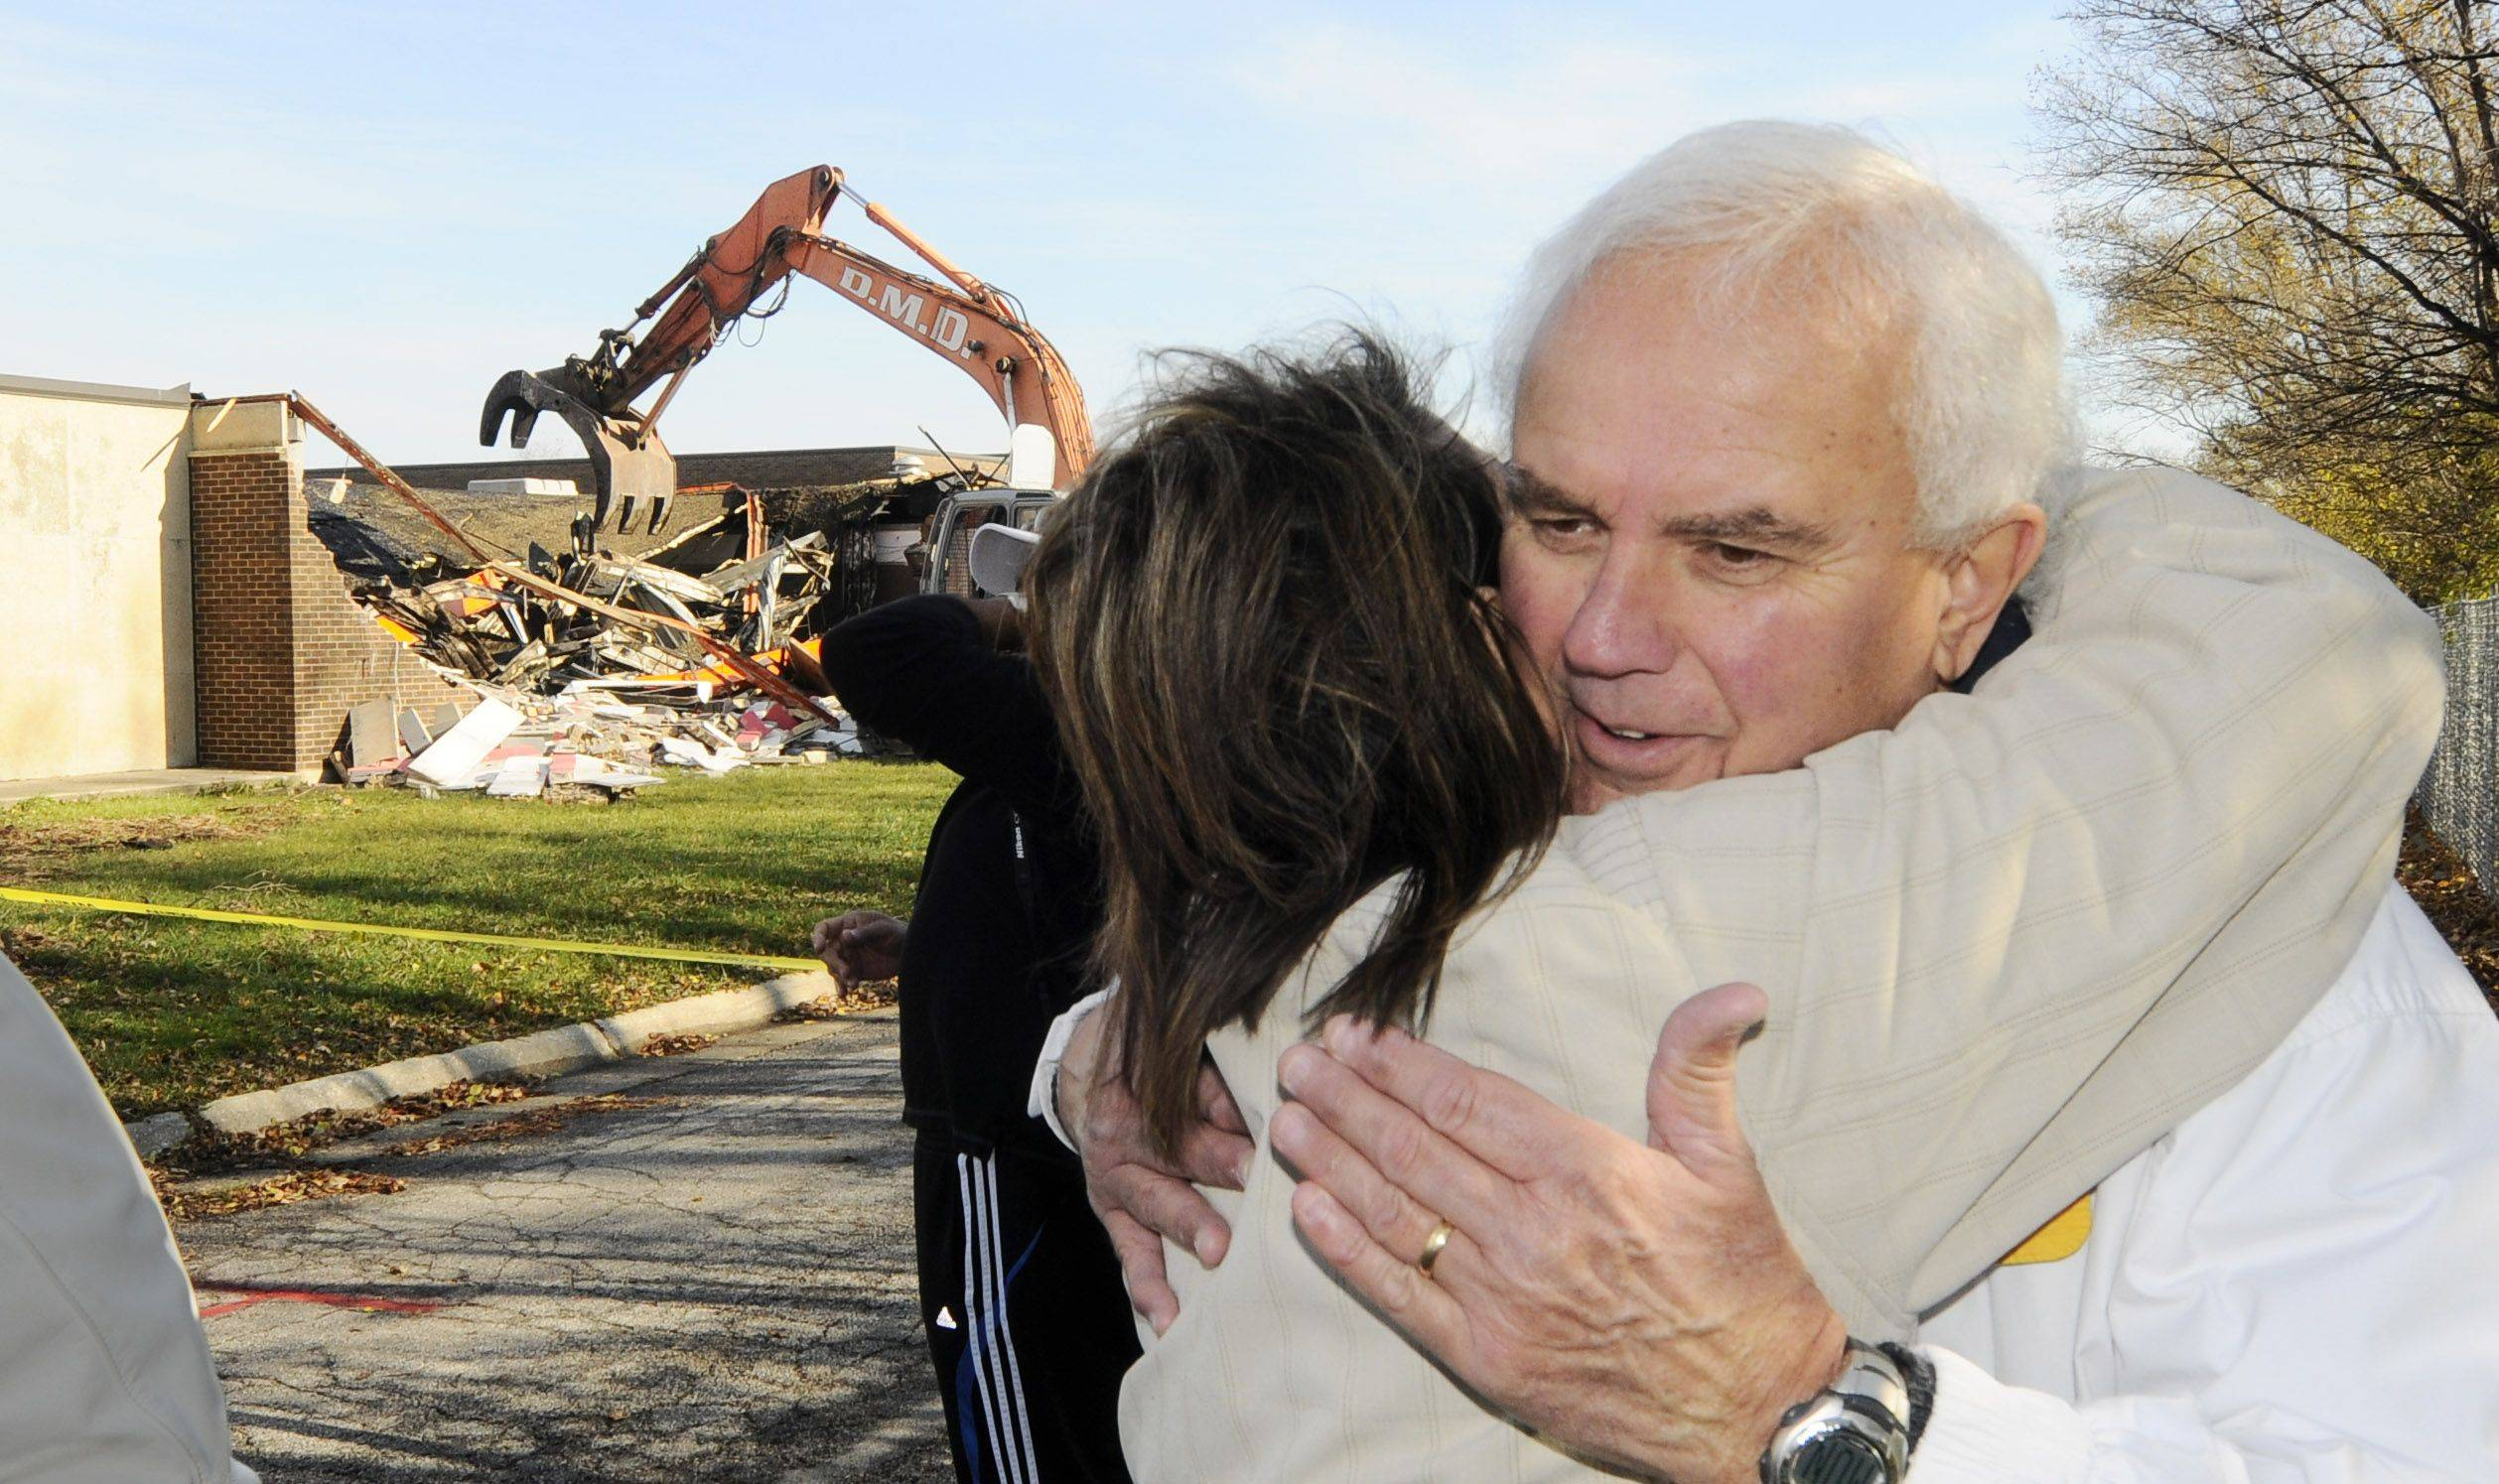 Former Driscoll student Veronica Togtman hugs family friend Dave Faydash as demolition work began Monday morning at Driscoll Catholic High School in Addison. Former students and parents such as Faydash were on hand to watch and take photos.